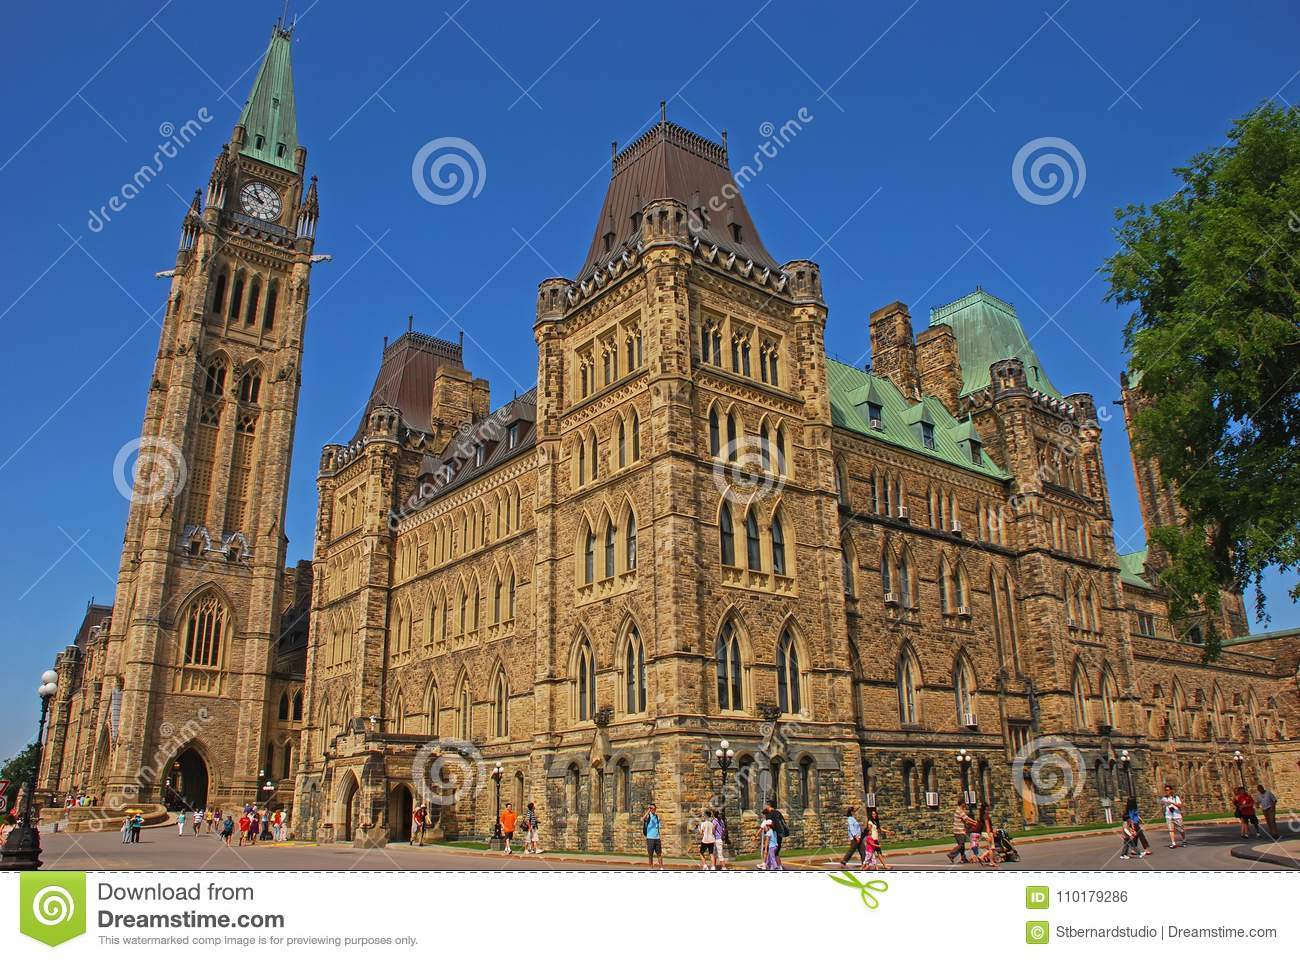 This is Centre Block which is the main building of the Canadian parliamentary complex on Parliament Hill, Ottawa, Ontario, Canada